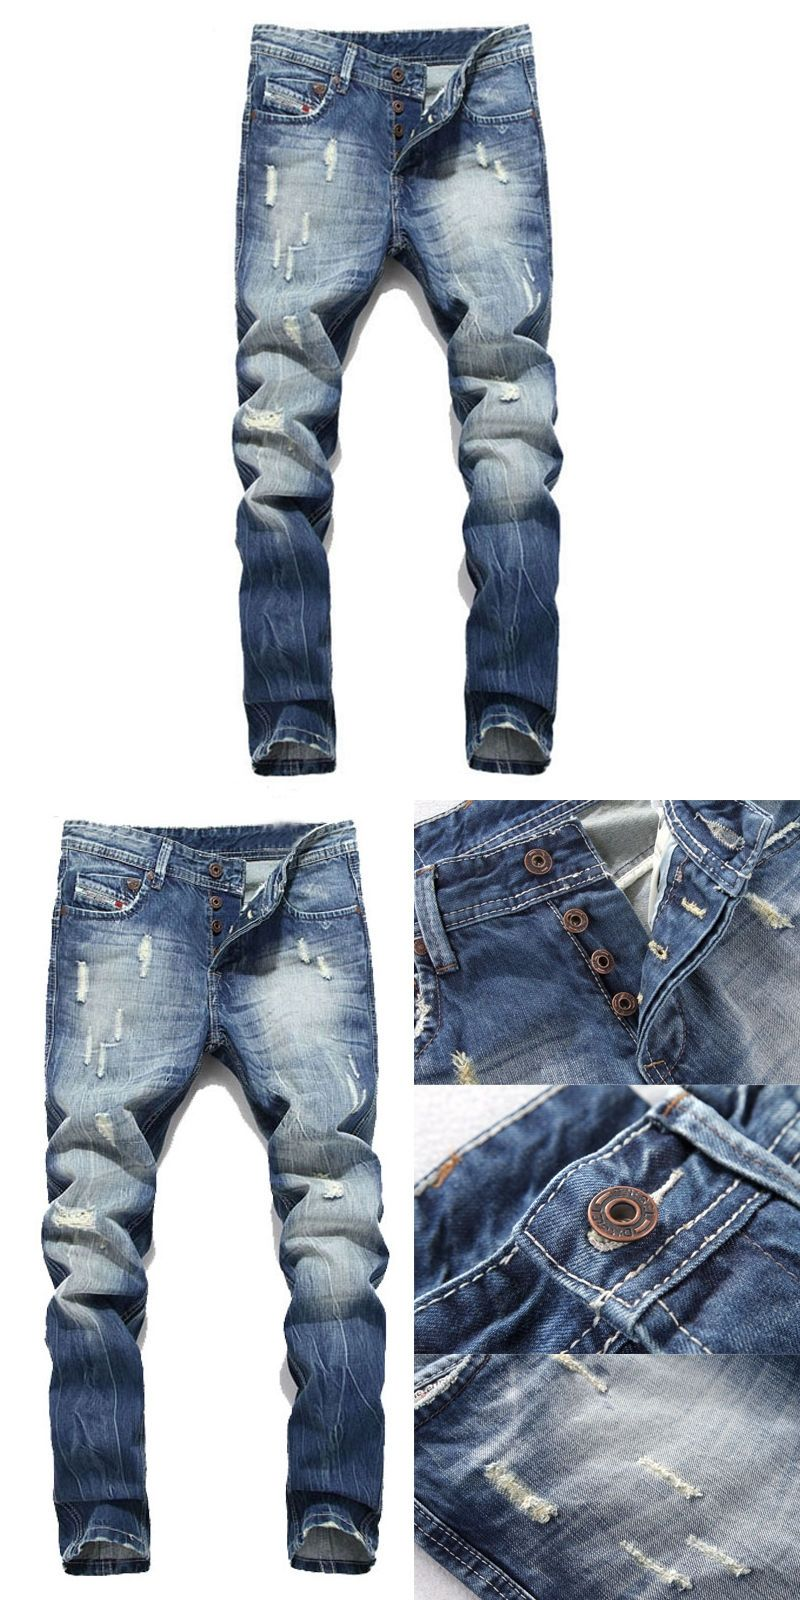 bd52064dc07 Men Pants Ripped Designer Skinny Jeans Stretch Denim Distress Frayed Biker  Jeans Boys Men